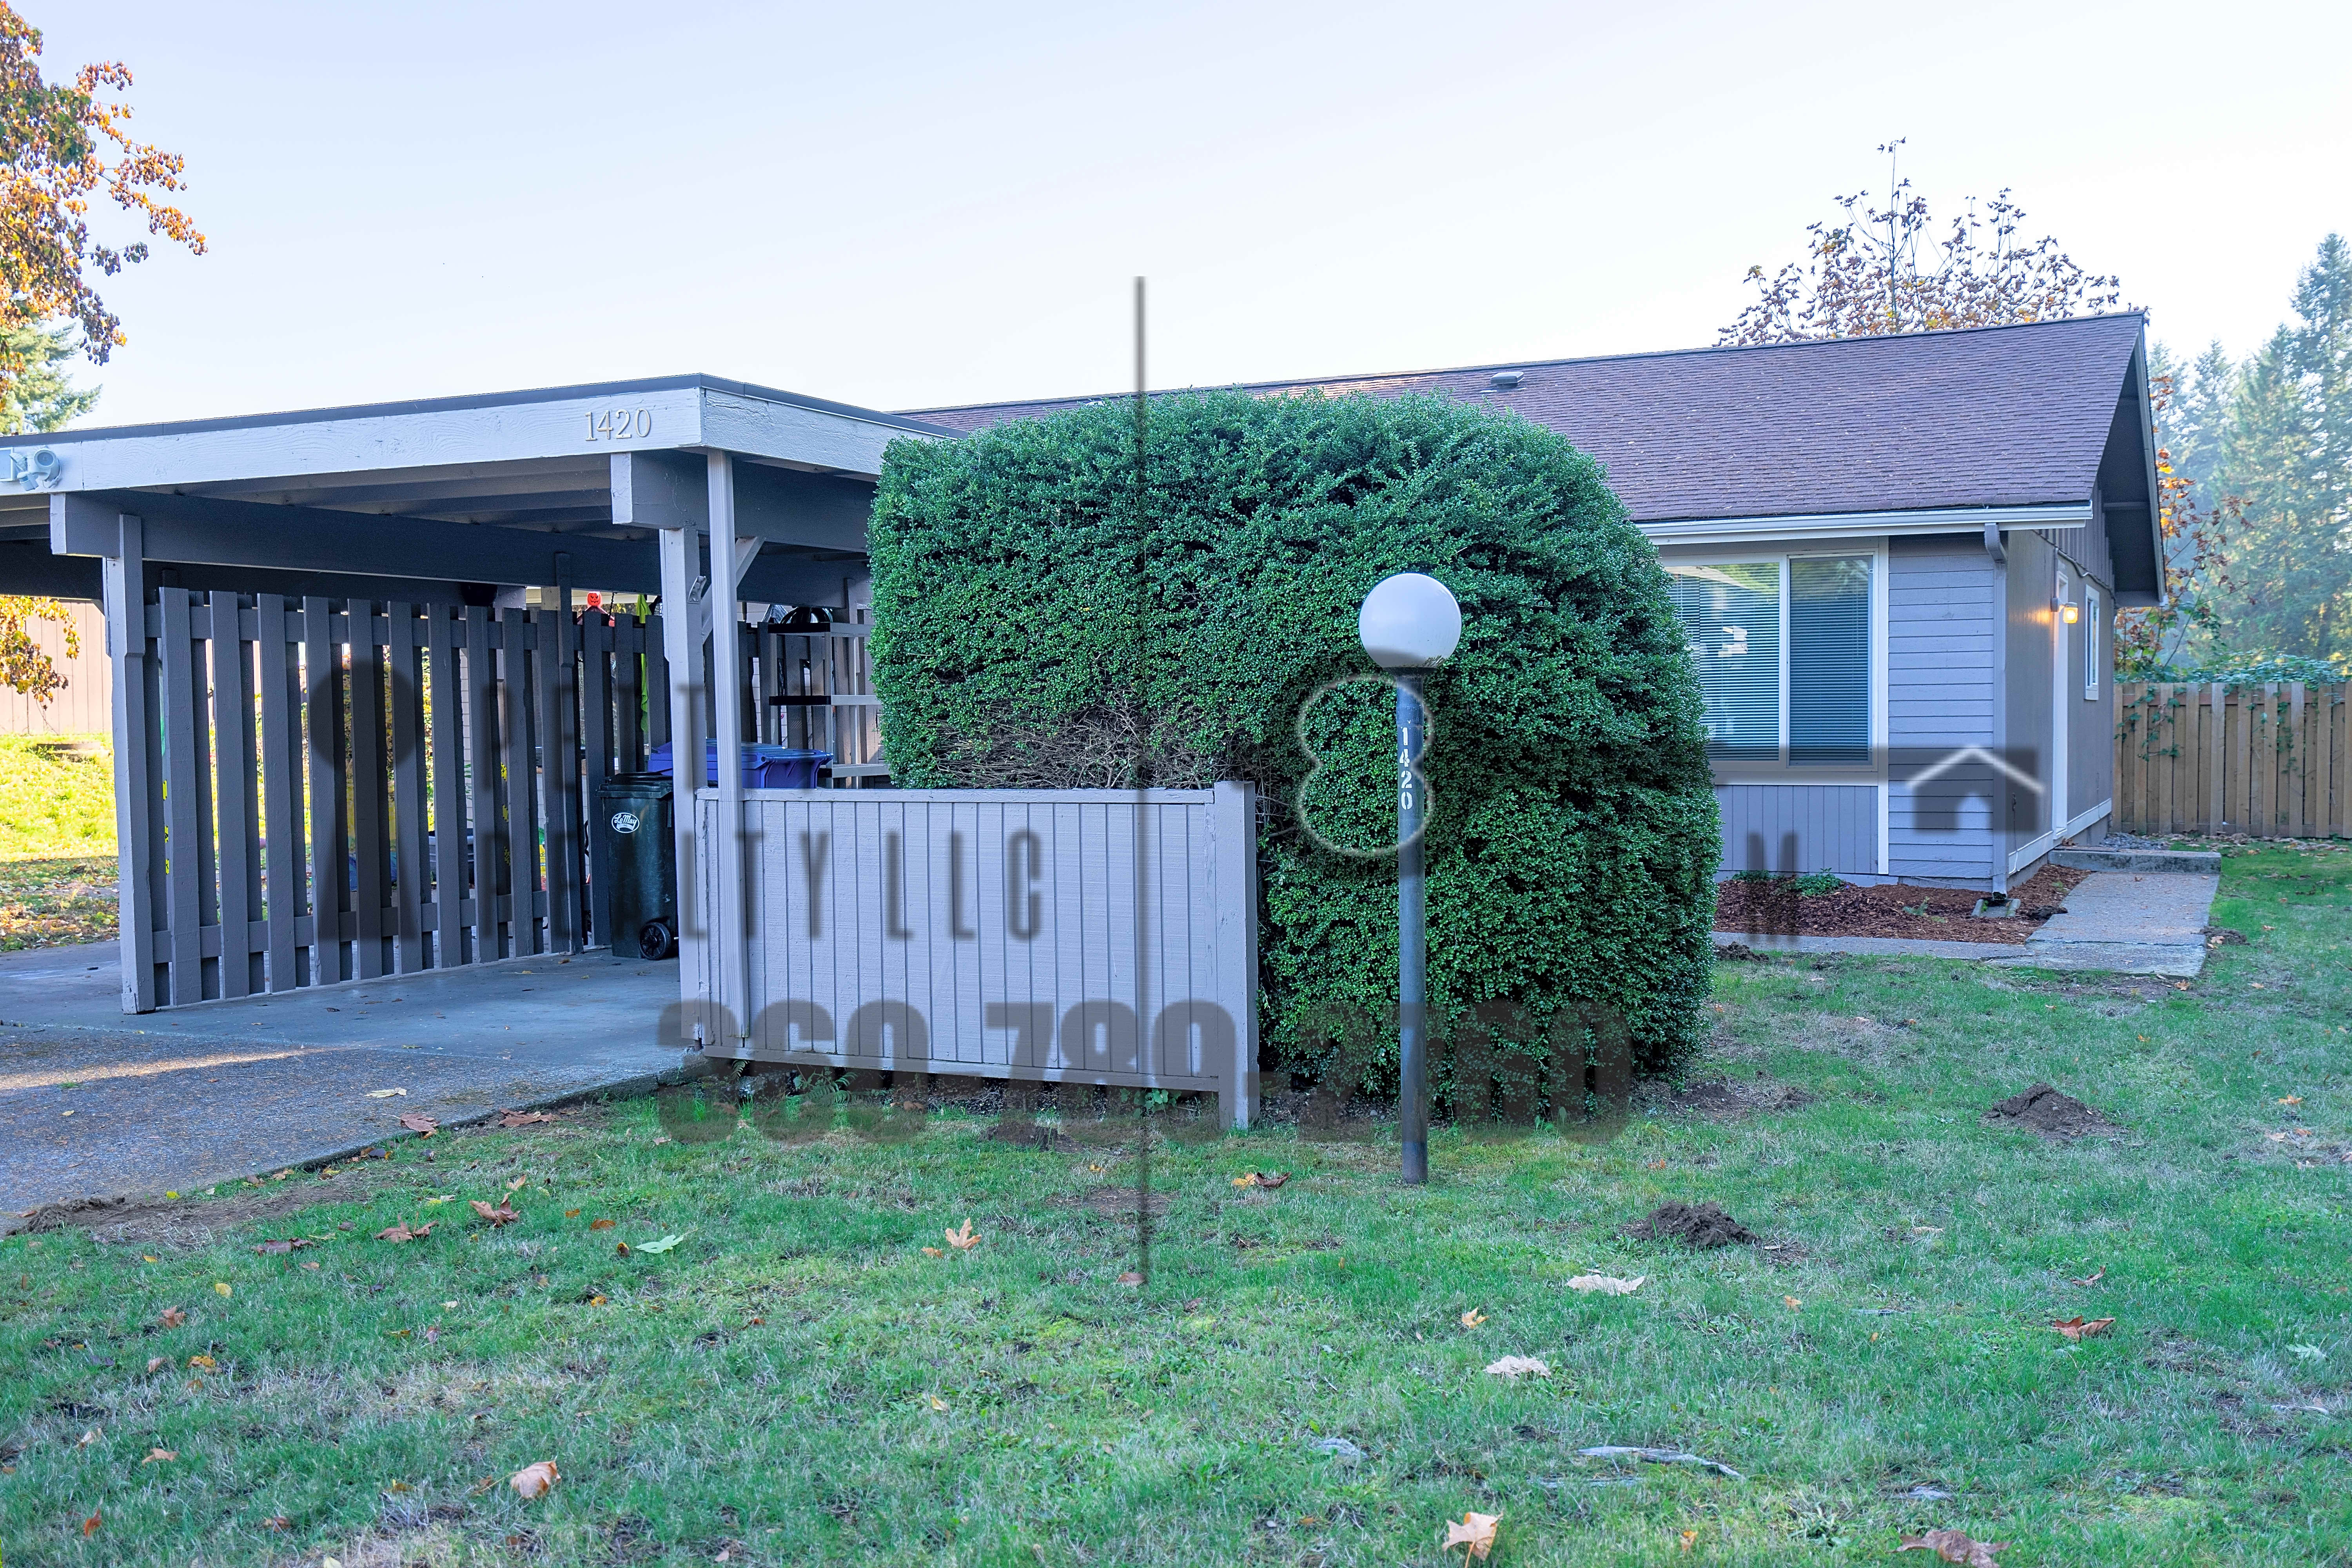 Condo for Rent in Olympia